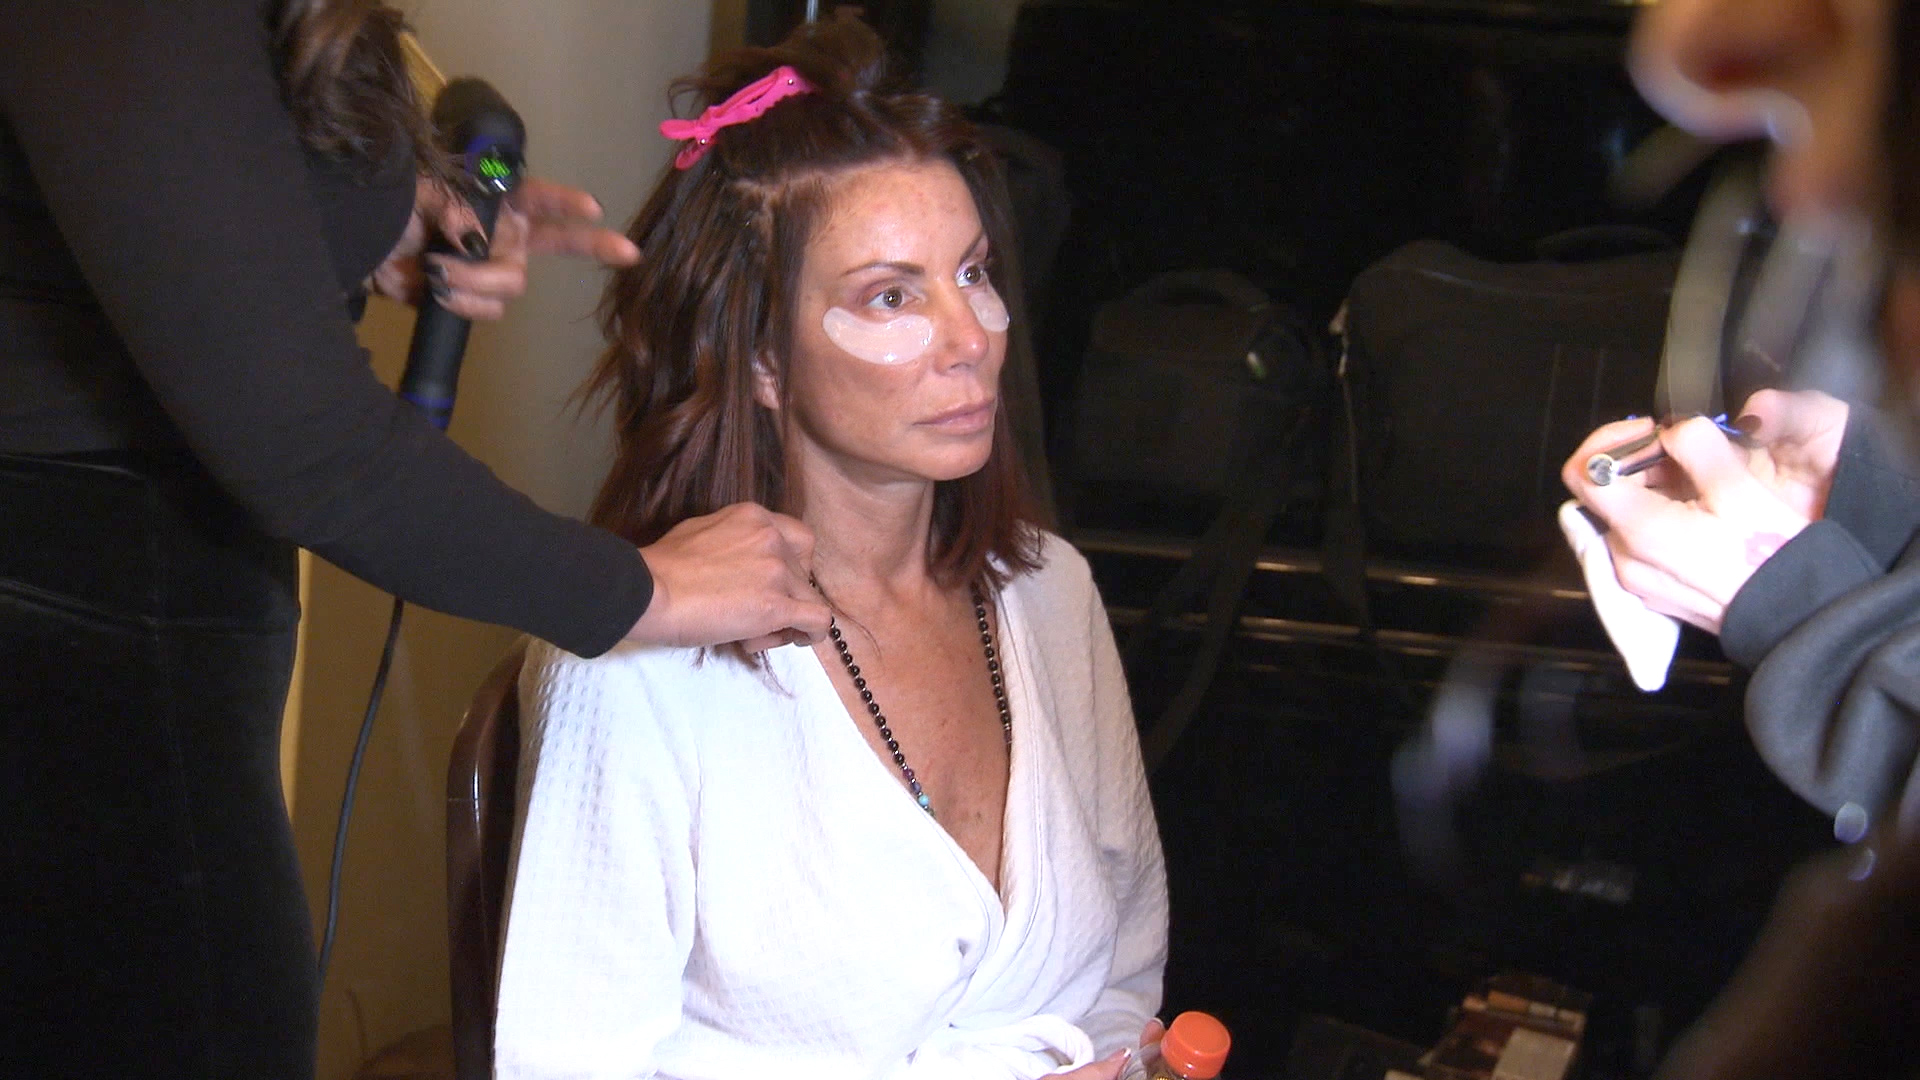 Your First Look at Part 2 of The Real Housewives of New Jersey Season 10 Reunion